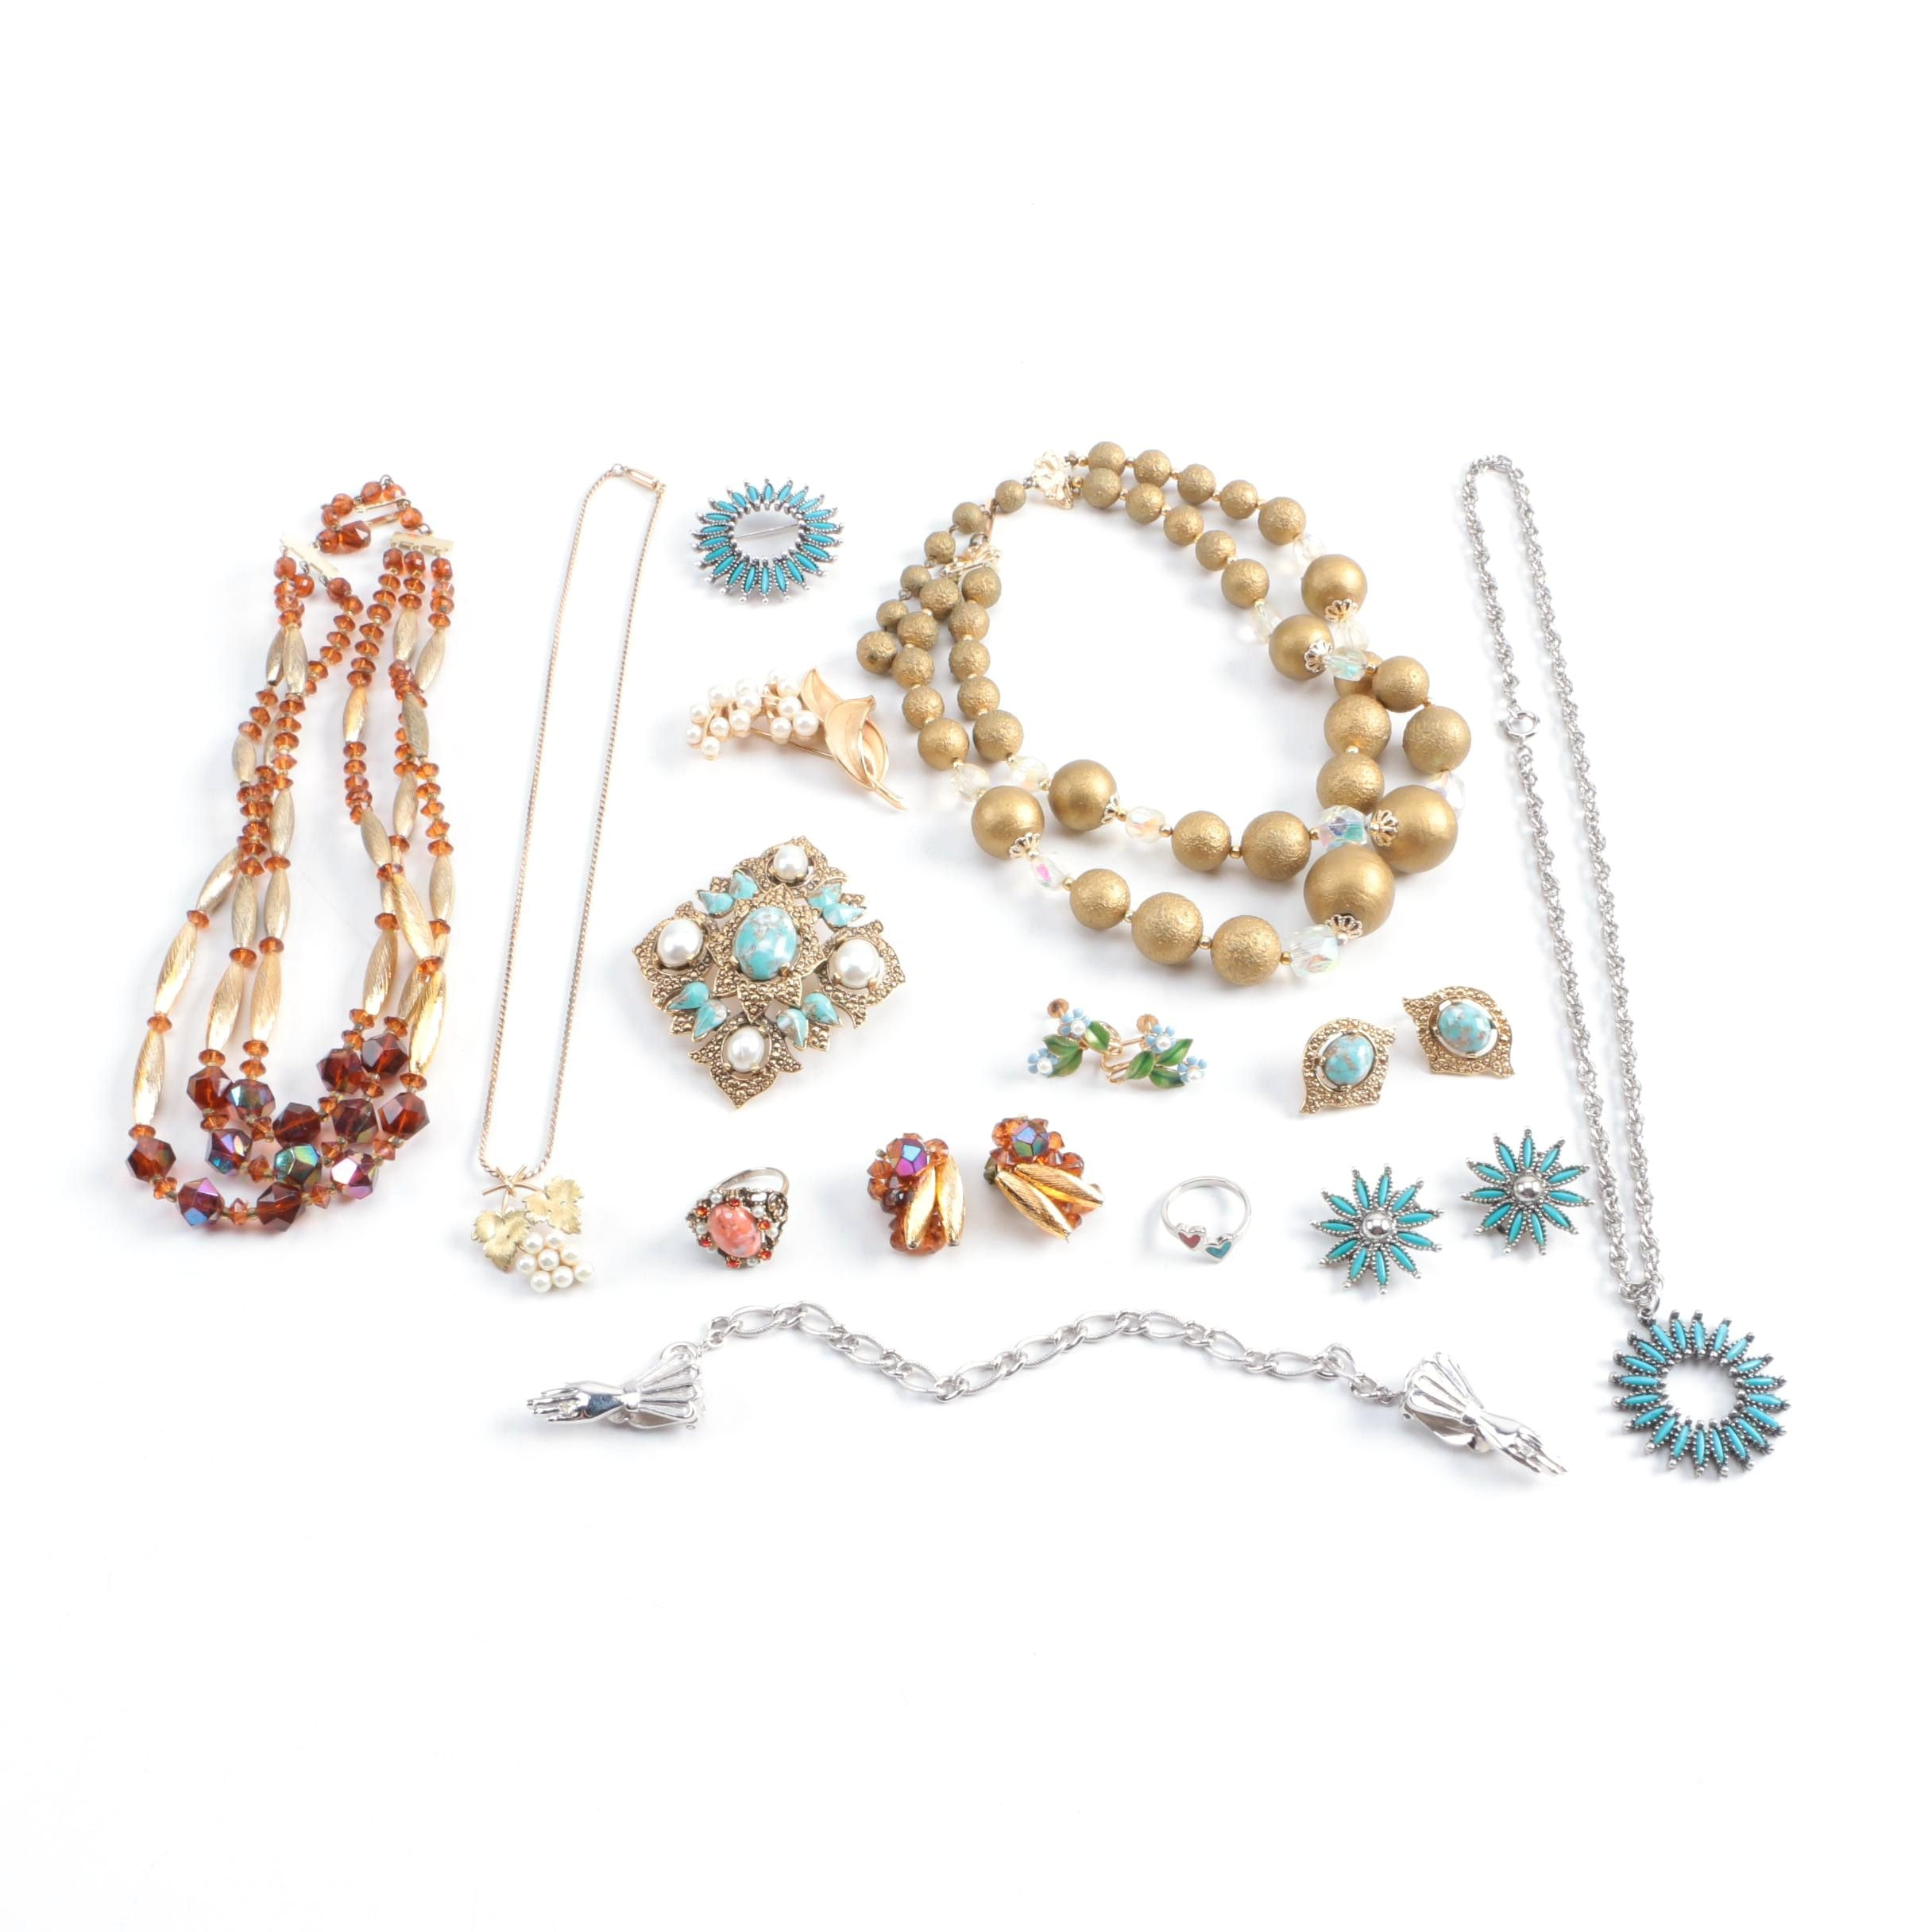 Vintage Jewelry Including Trifari and Sarah Coventry